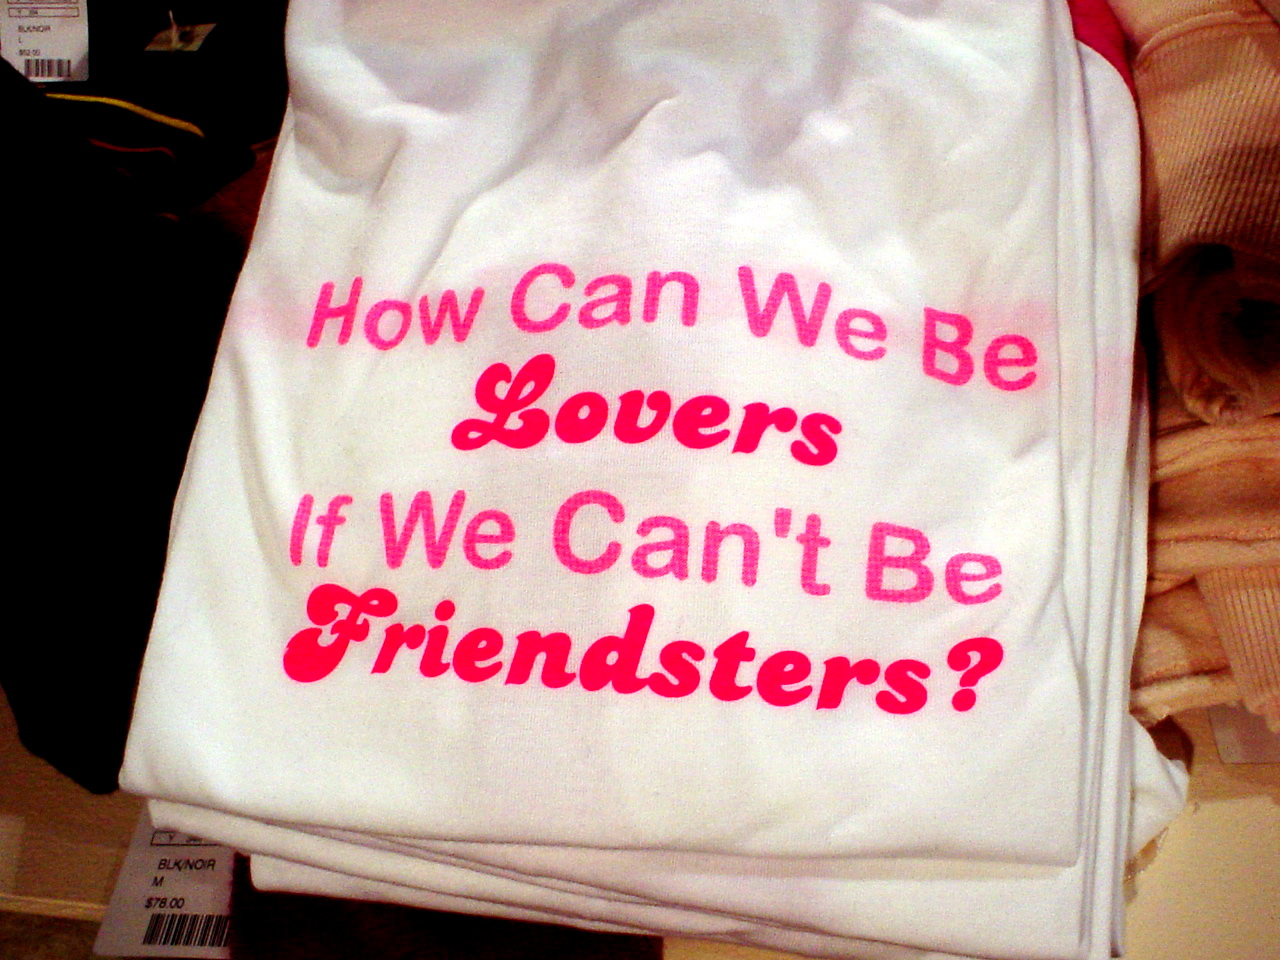 Friends Friendsters And Top 8 Writing Community Into